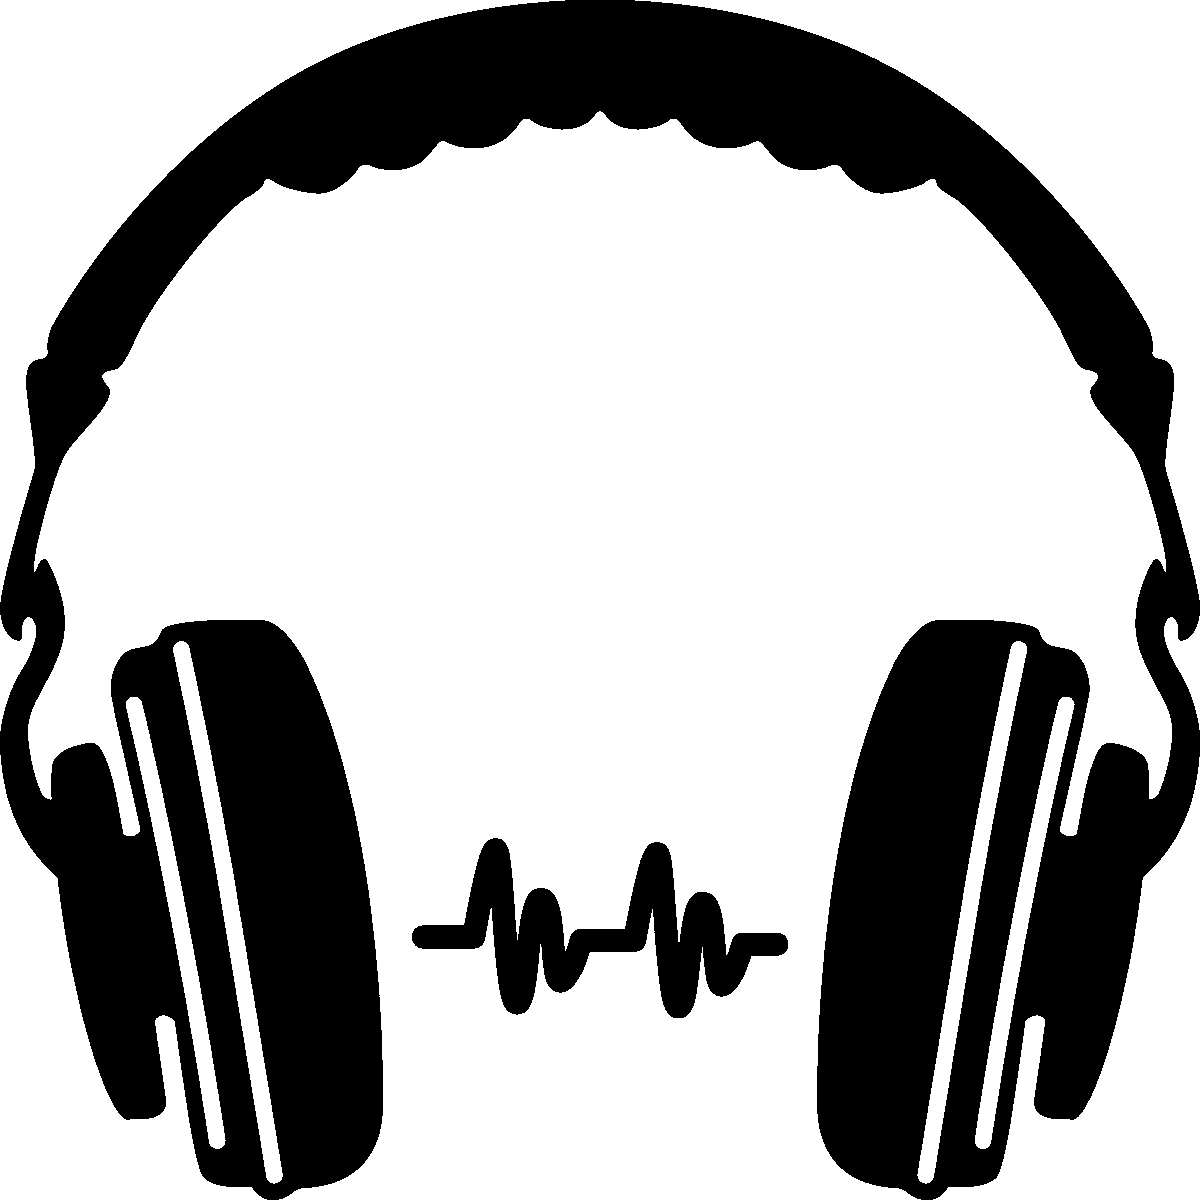 1200x1200 Headphone Silhouette Clip Art Png Png Mart